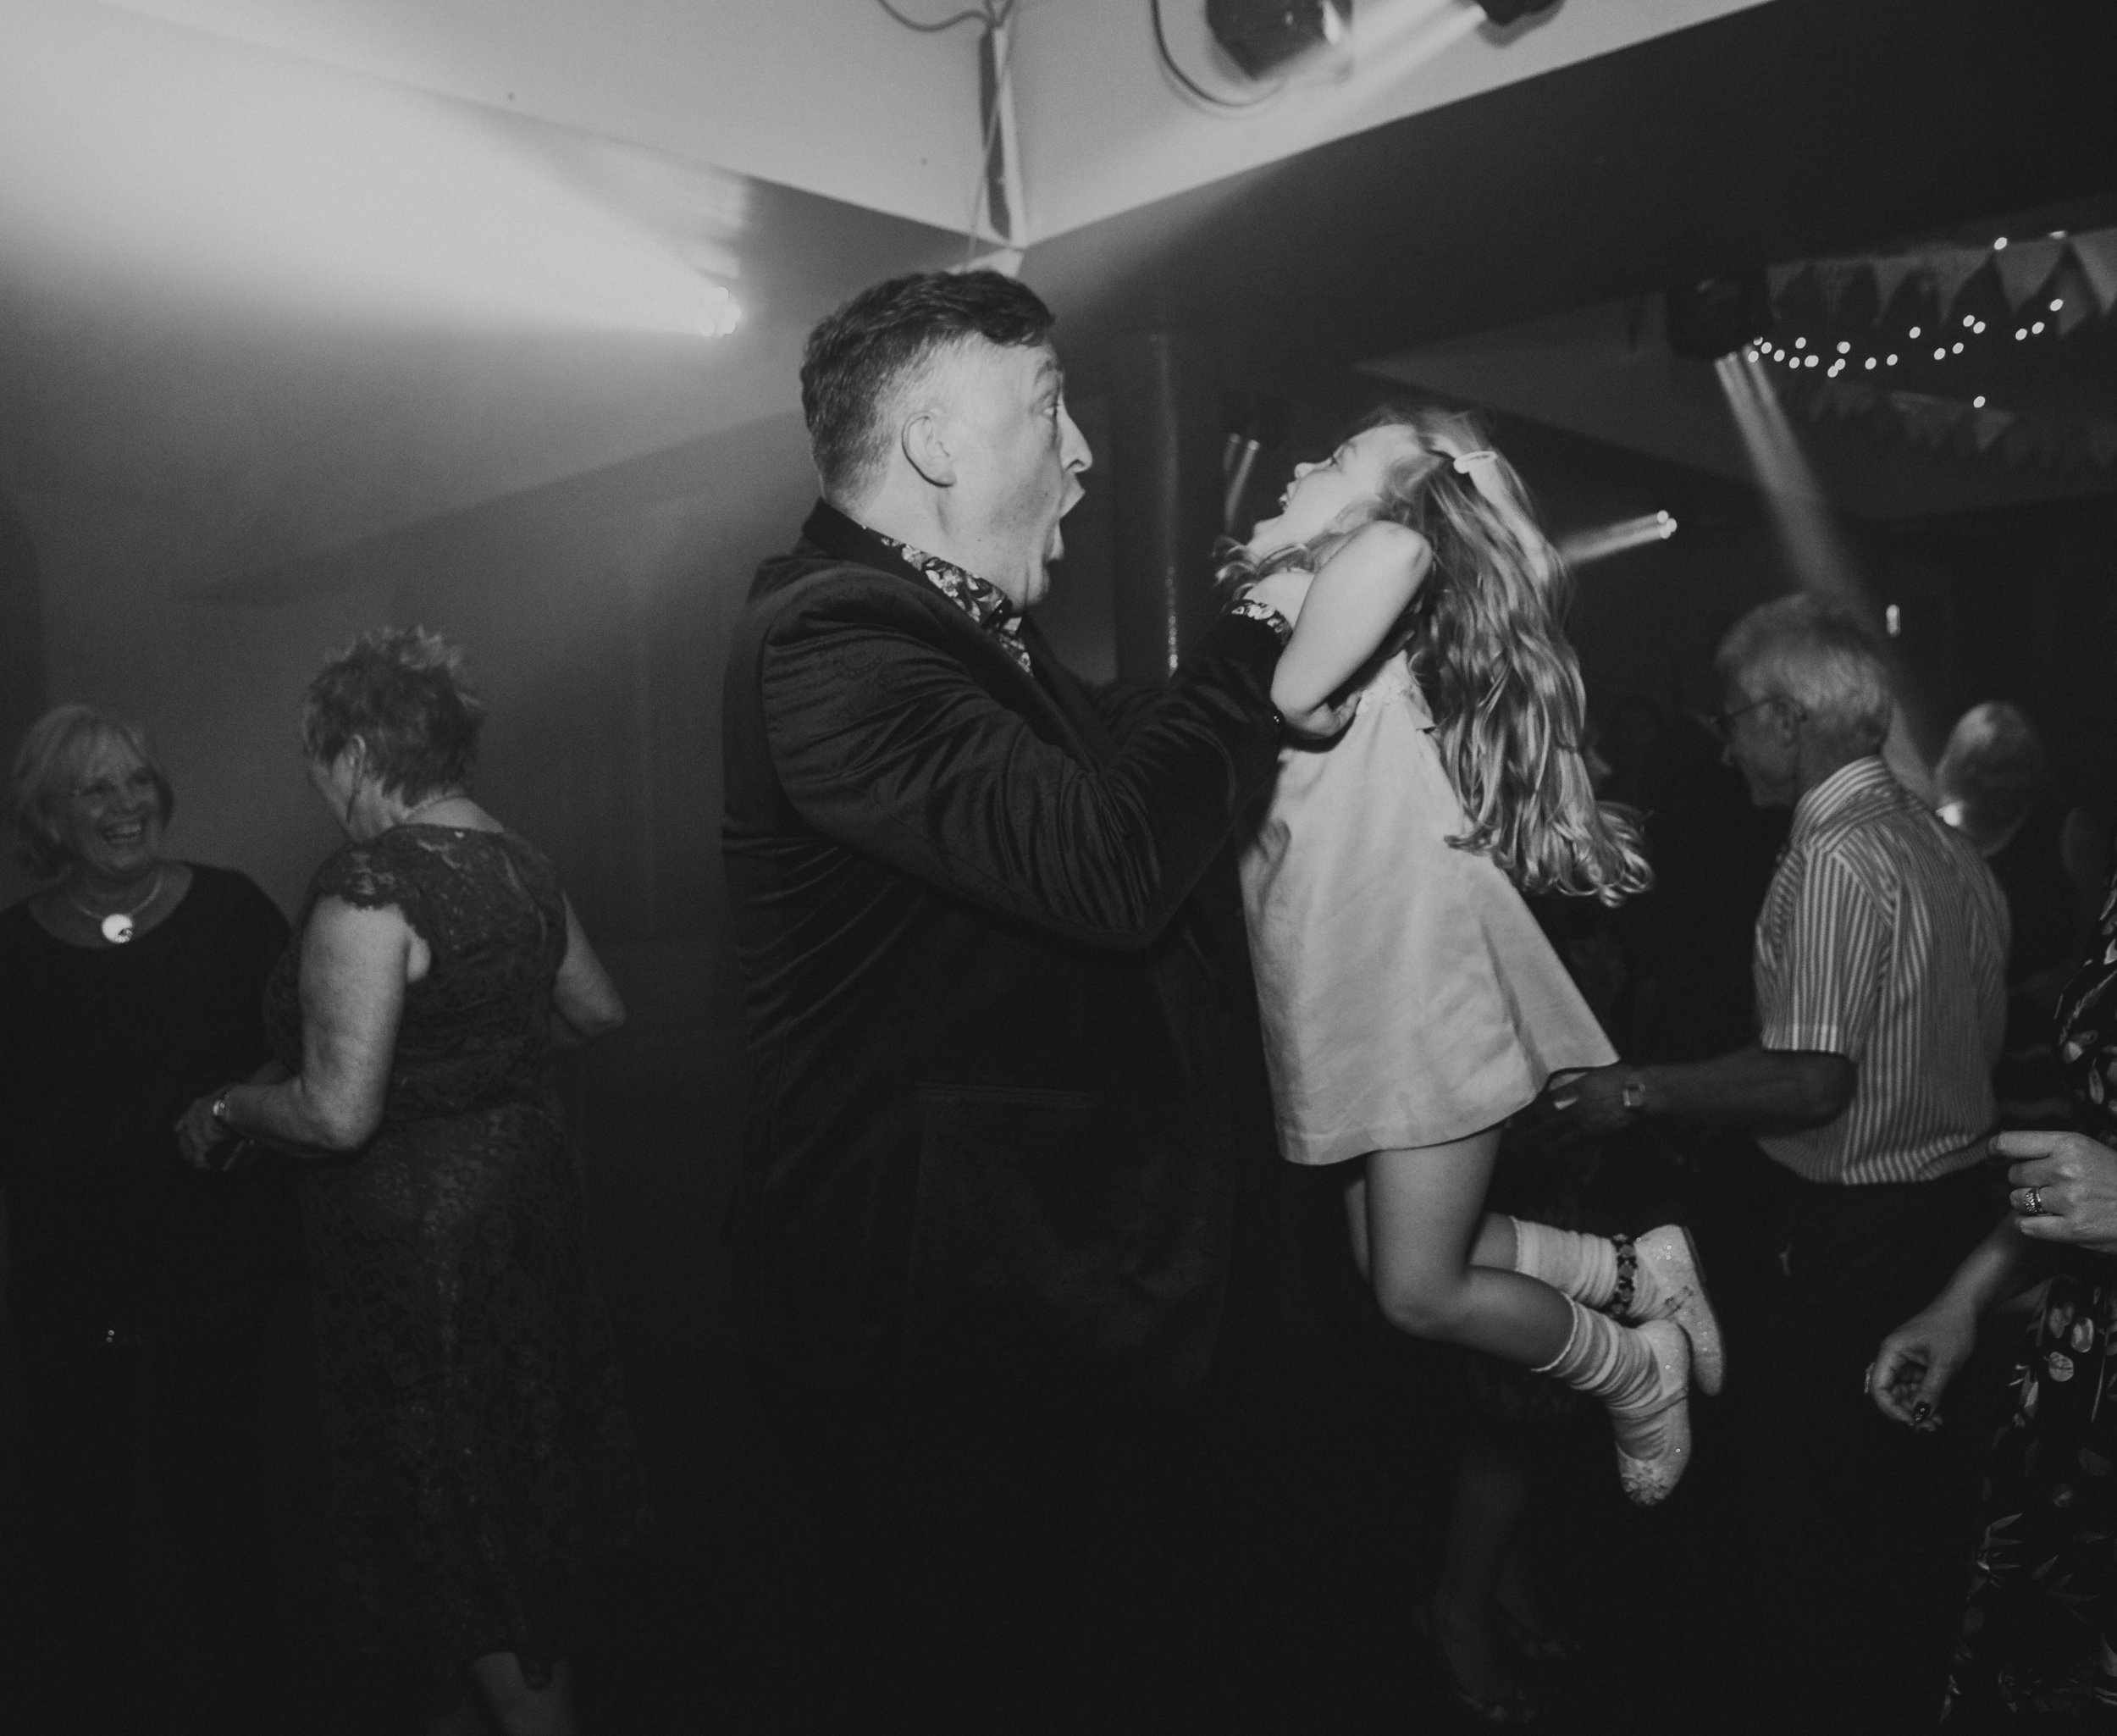 ALTERNATIVE_WEDDING_PHOTOGRAPHY_LEEDS_UK_PJ_PHILLIPS_PHOTOGRAPHY_162.jpg